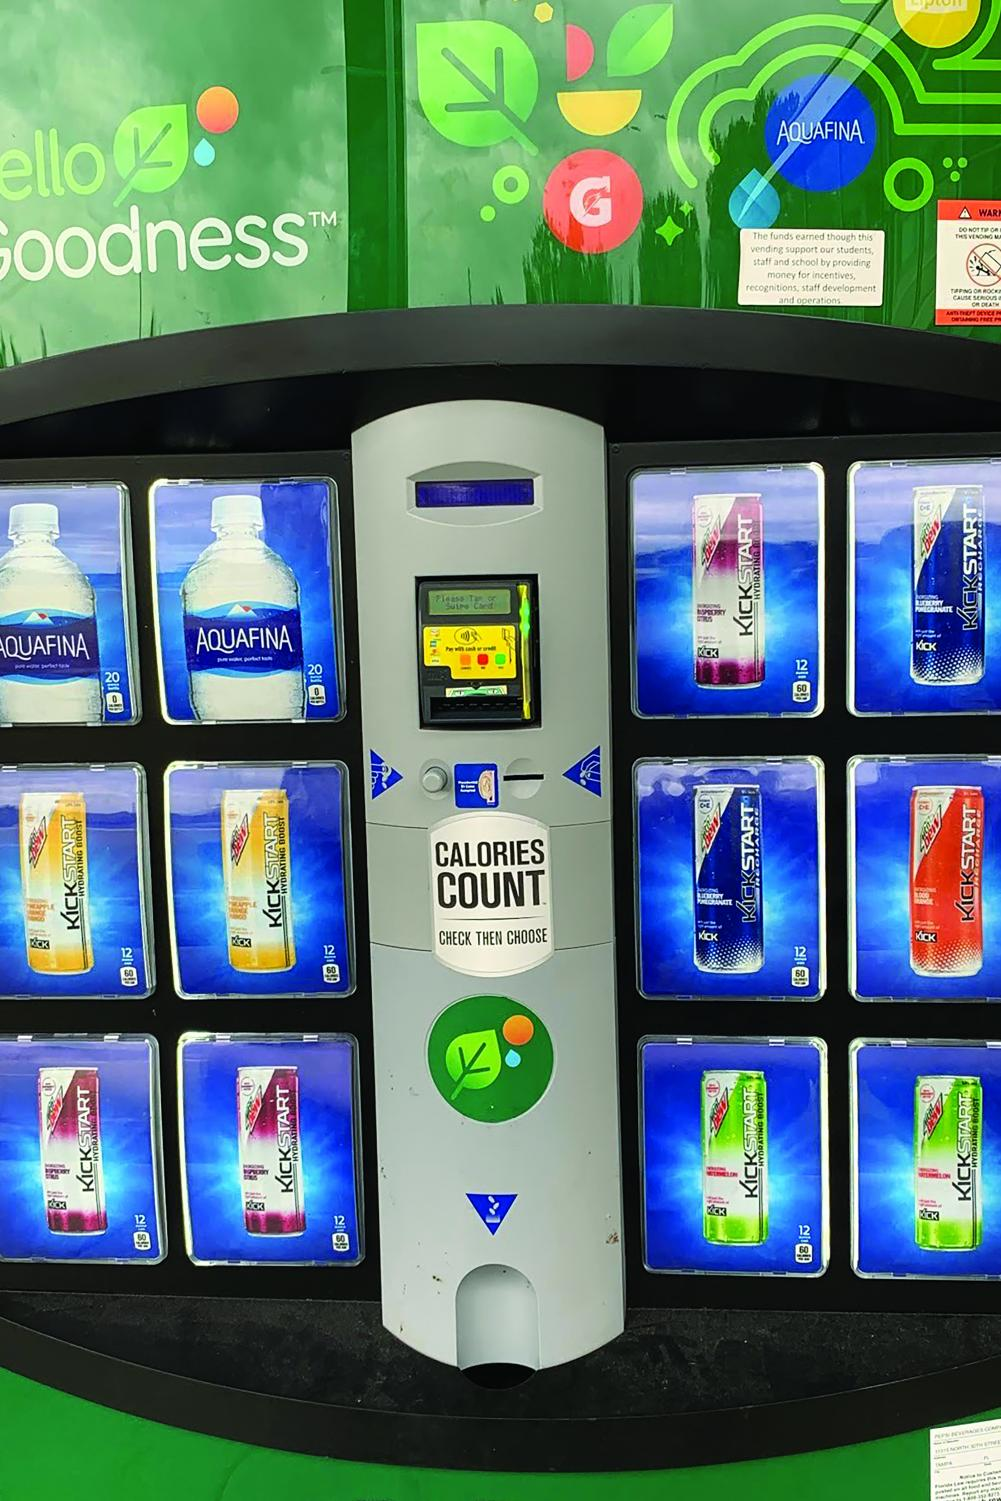 Vending machines, like the one featured in this image, can be found around school and offer some caffeinated beverages.